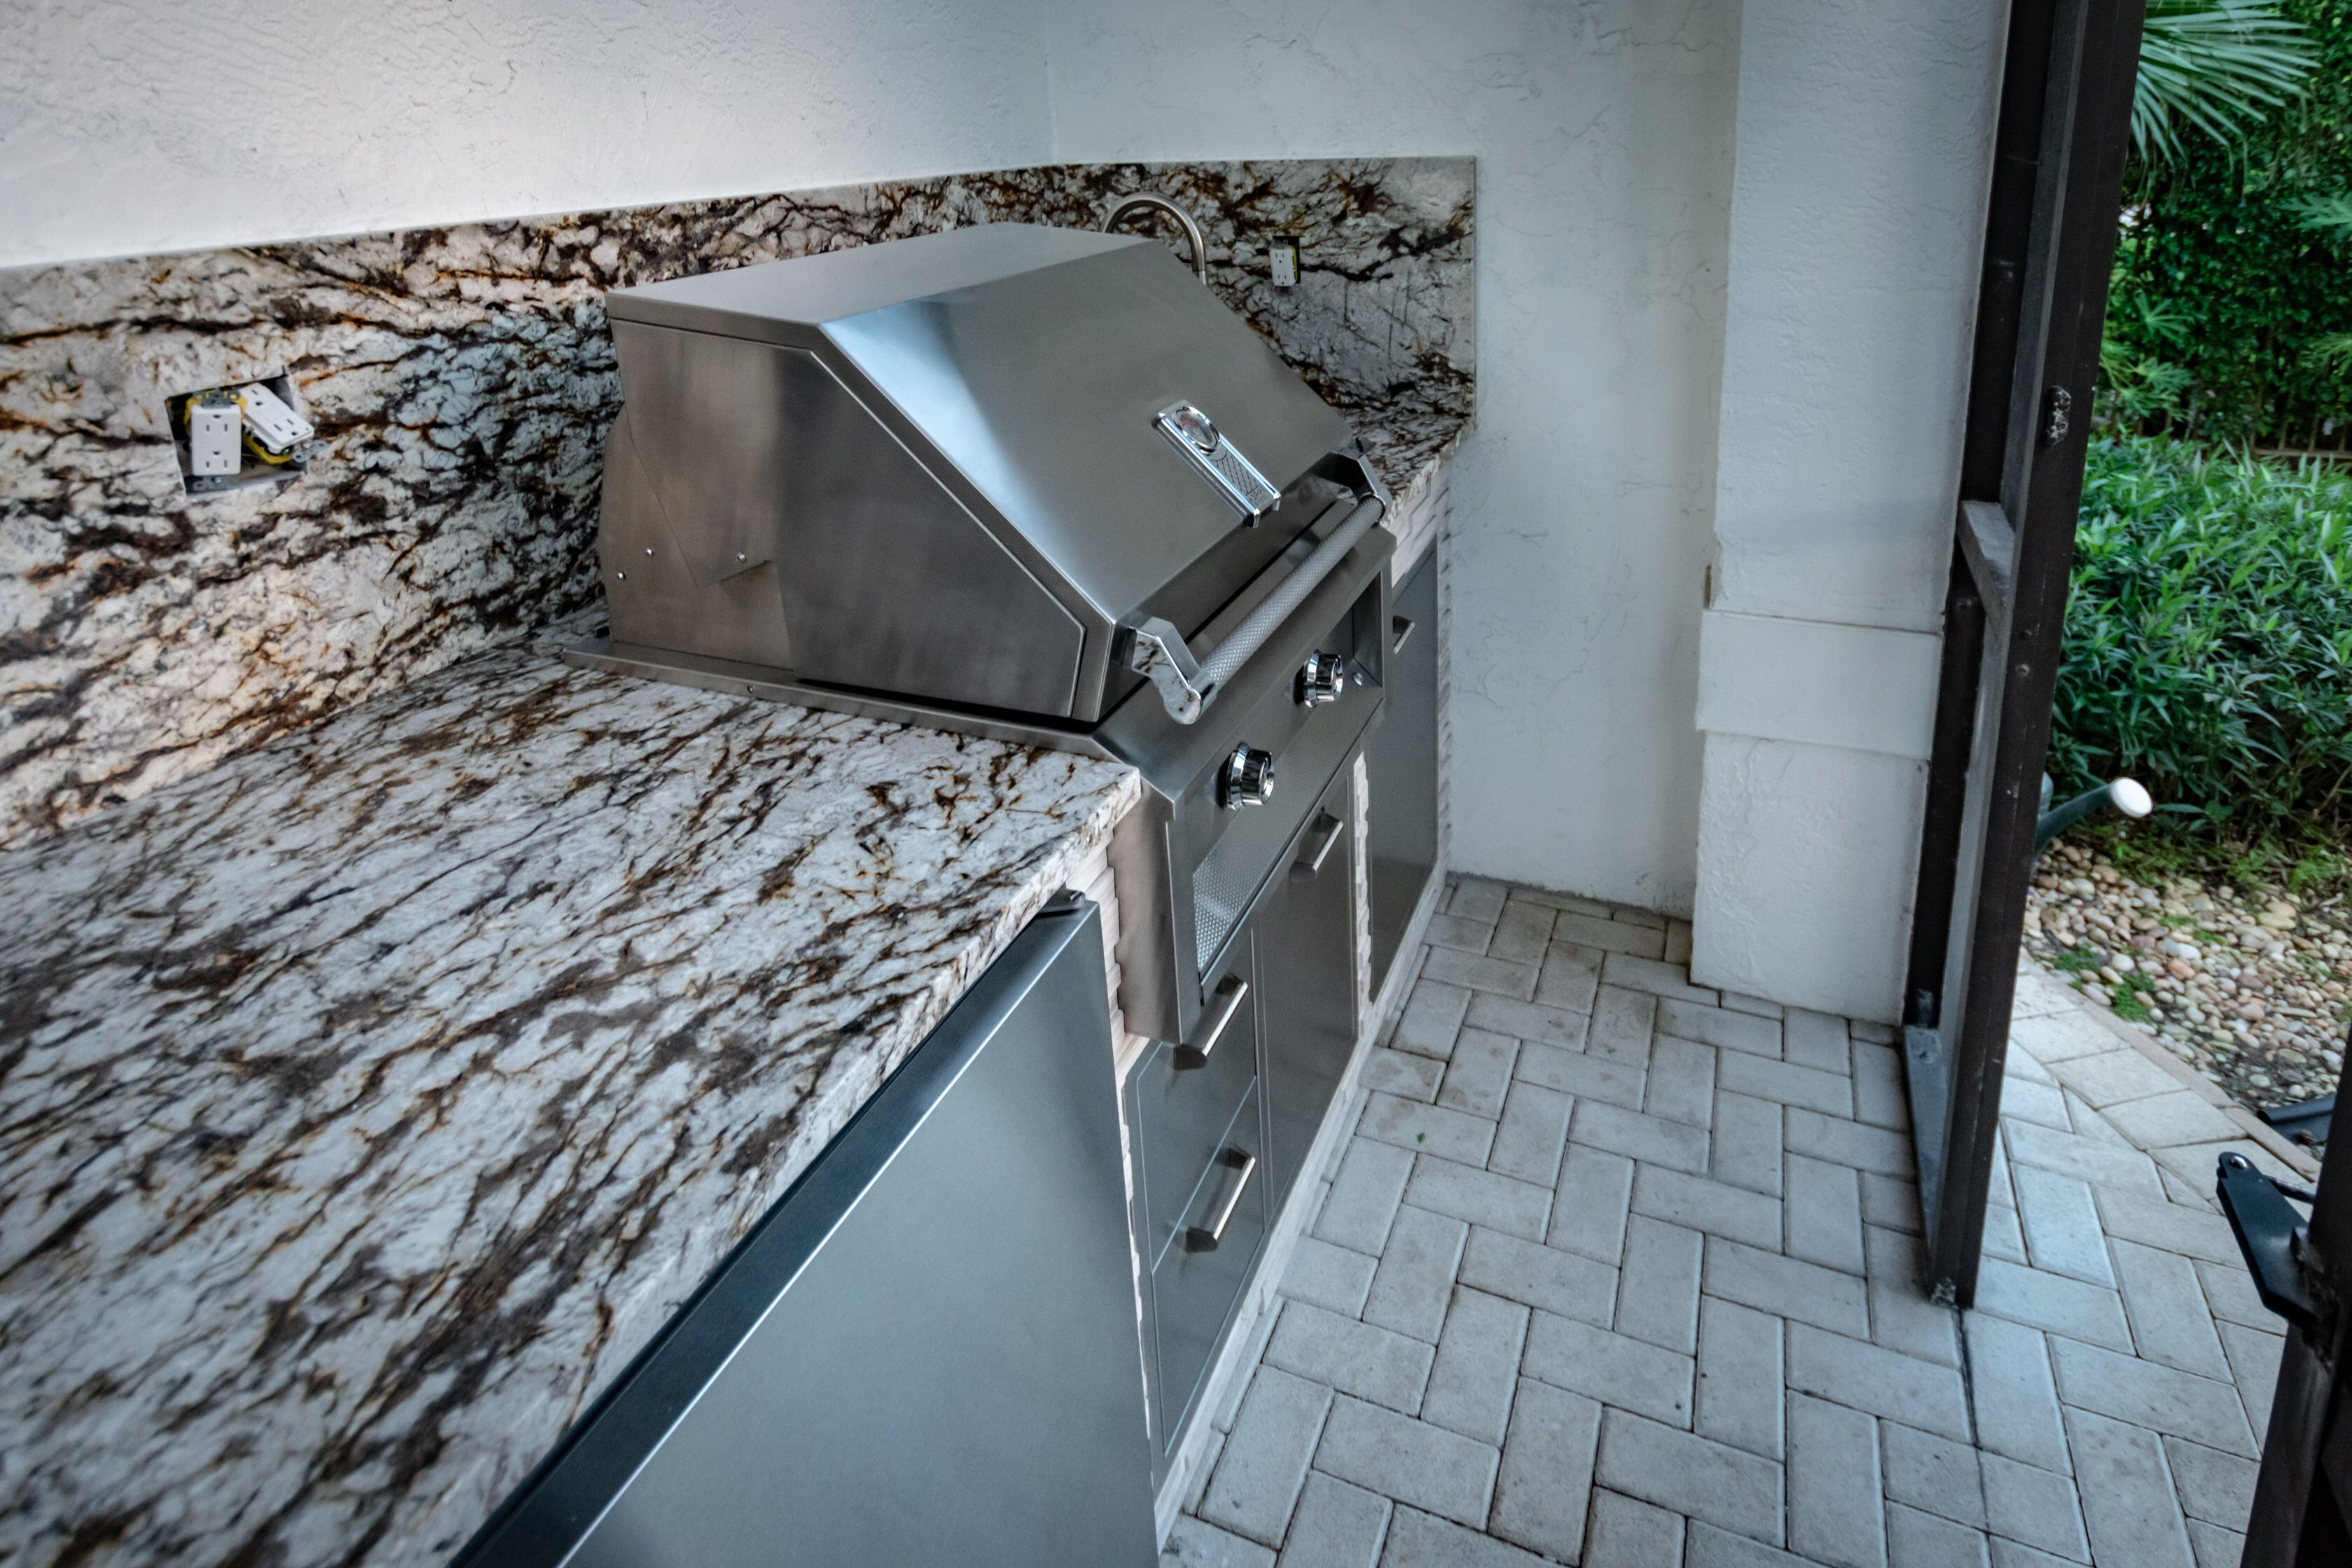 Holiday Ready Fischmanoutdoorkitchens Palmbeachgrillcleaner Outdoorentertainment Outdoorgrills Outdoorkitc Outdoor Kitchen Outdoor Appliances Patio Style